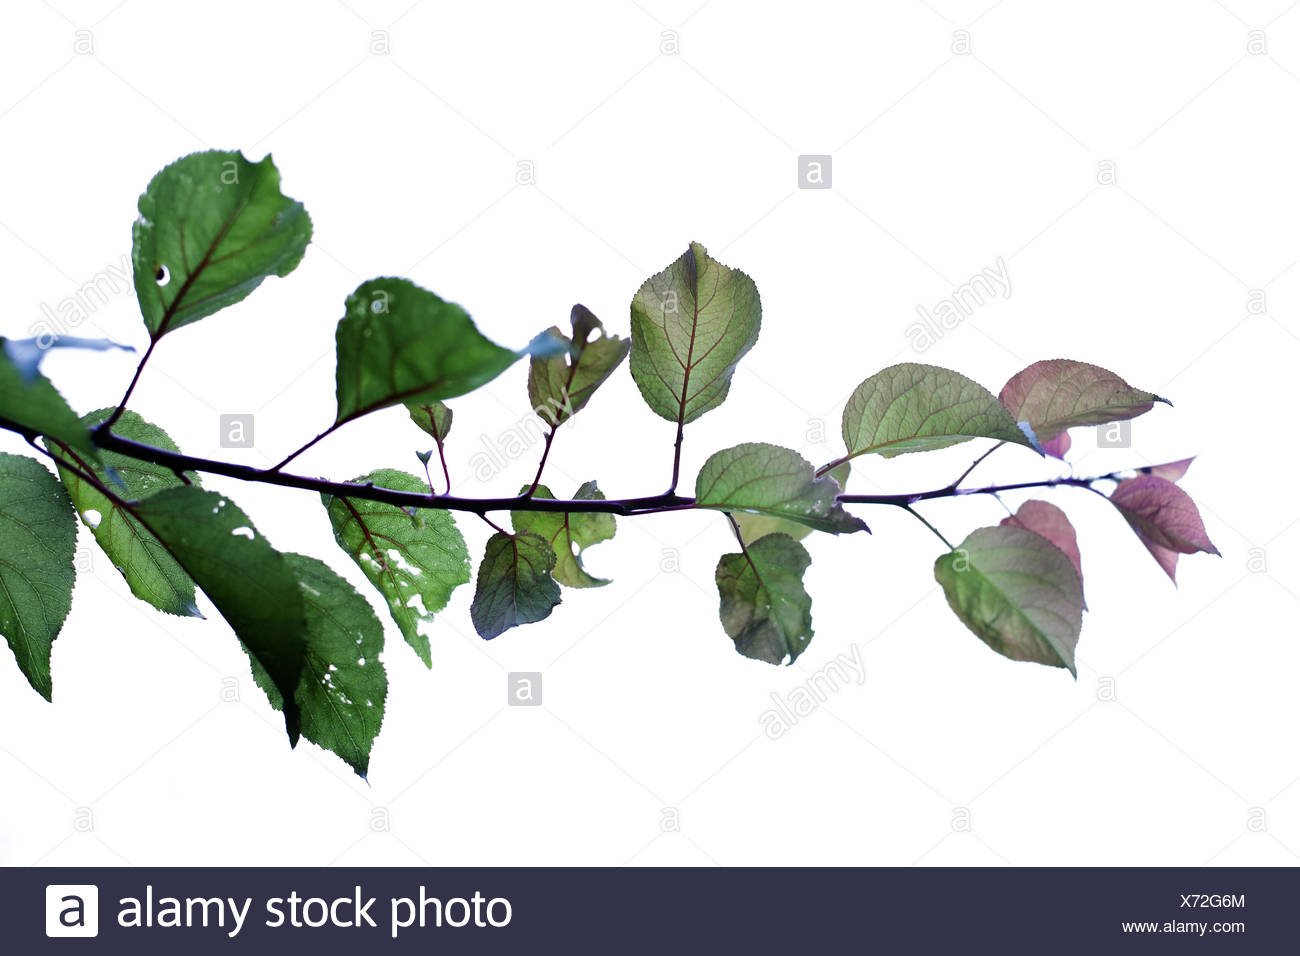 branch of a apricot tree - Stock Image